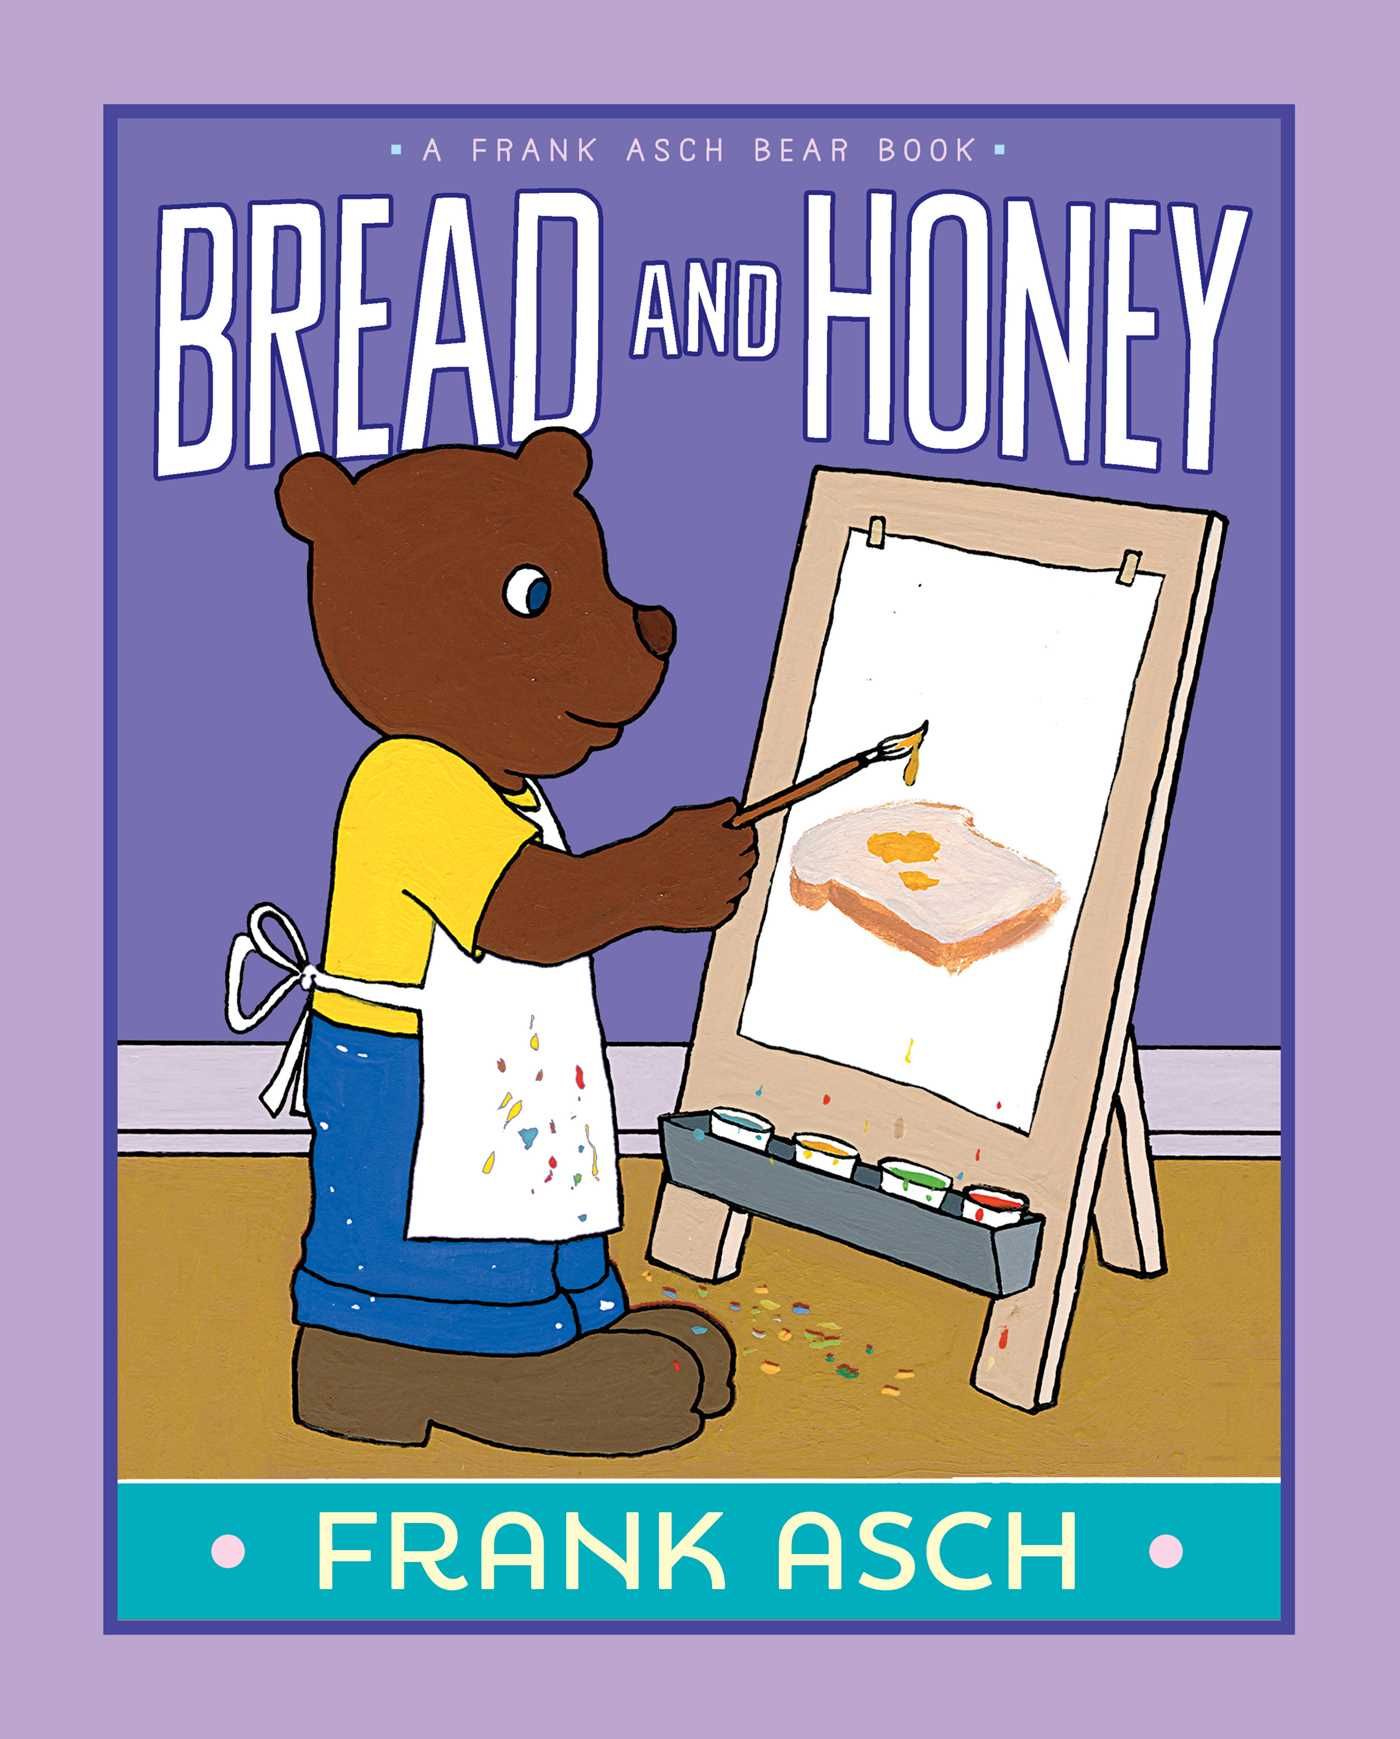 Bread and honey 9781442466654 hr